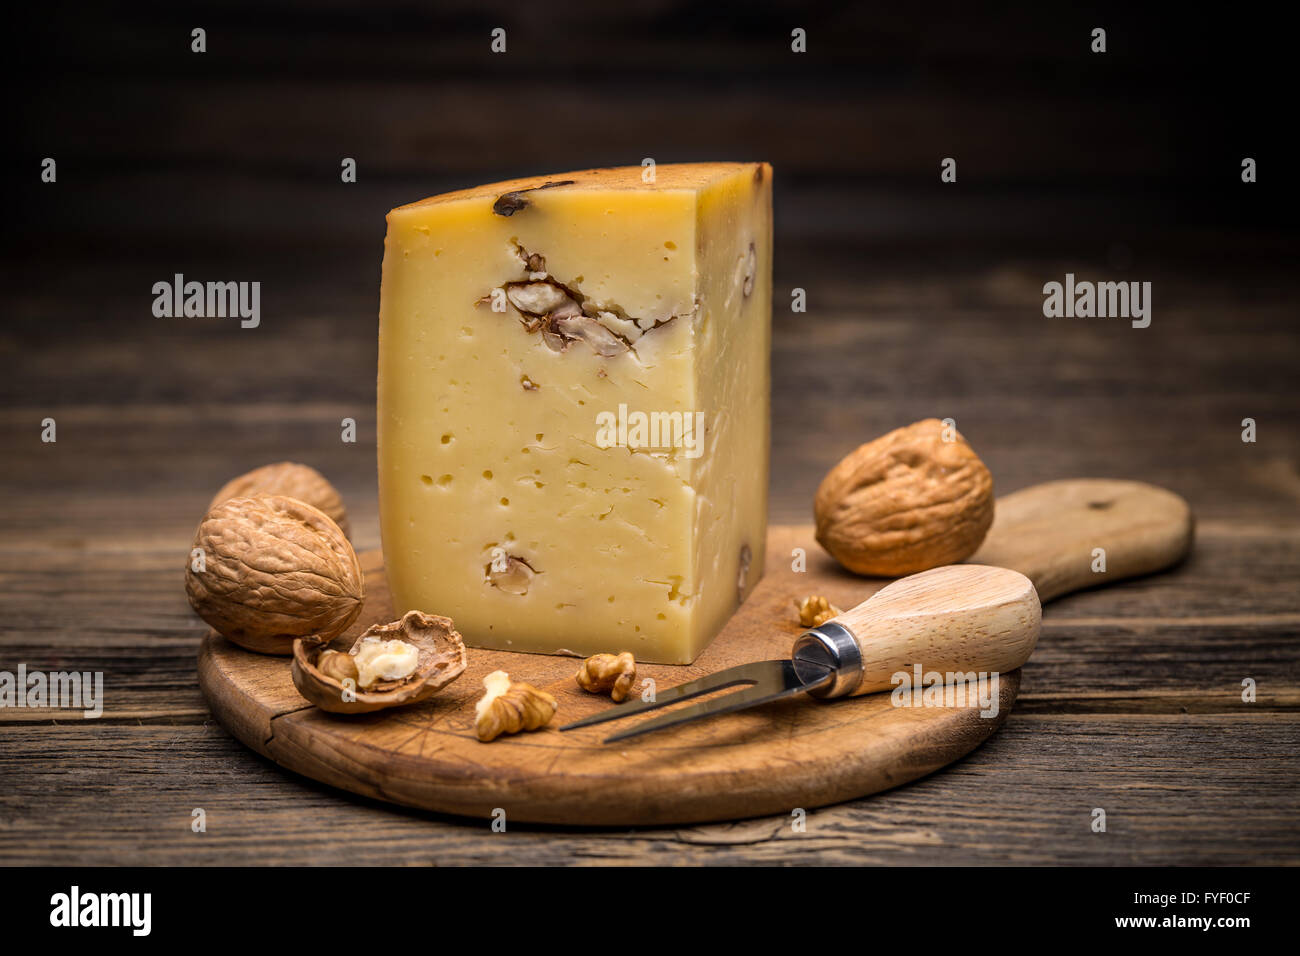 Piece of cheese with walnuts on wooden board - Stock Image